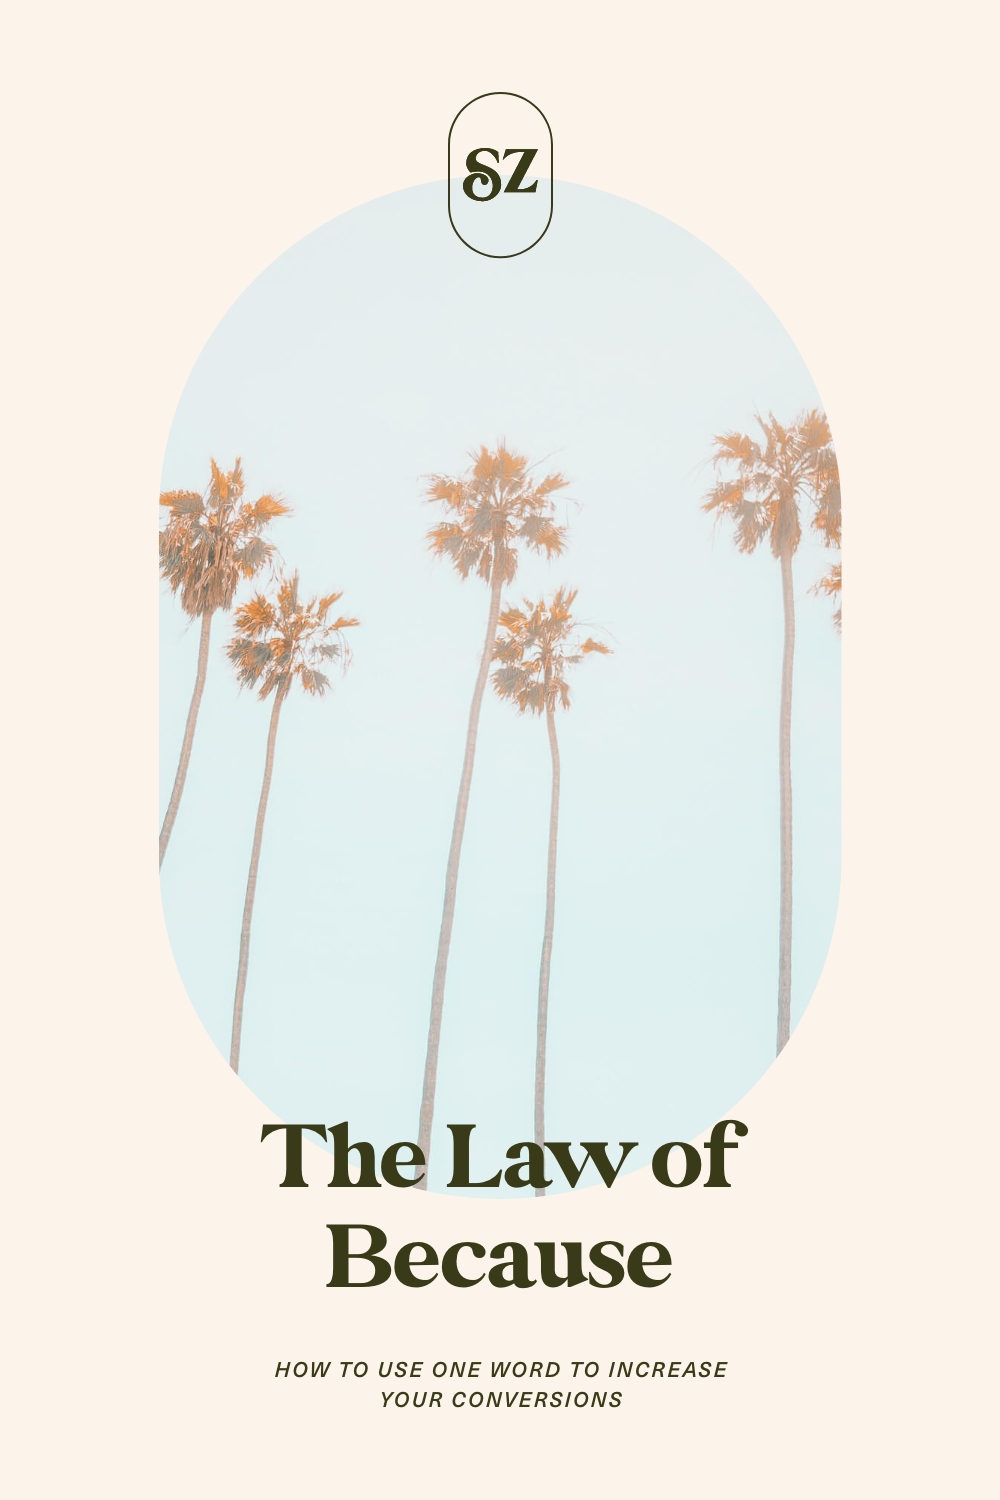 Pin it: The Law of Because. How to use one word to increase your conversions